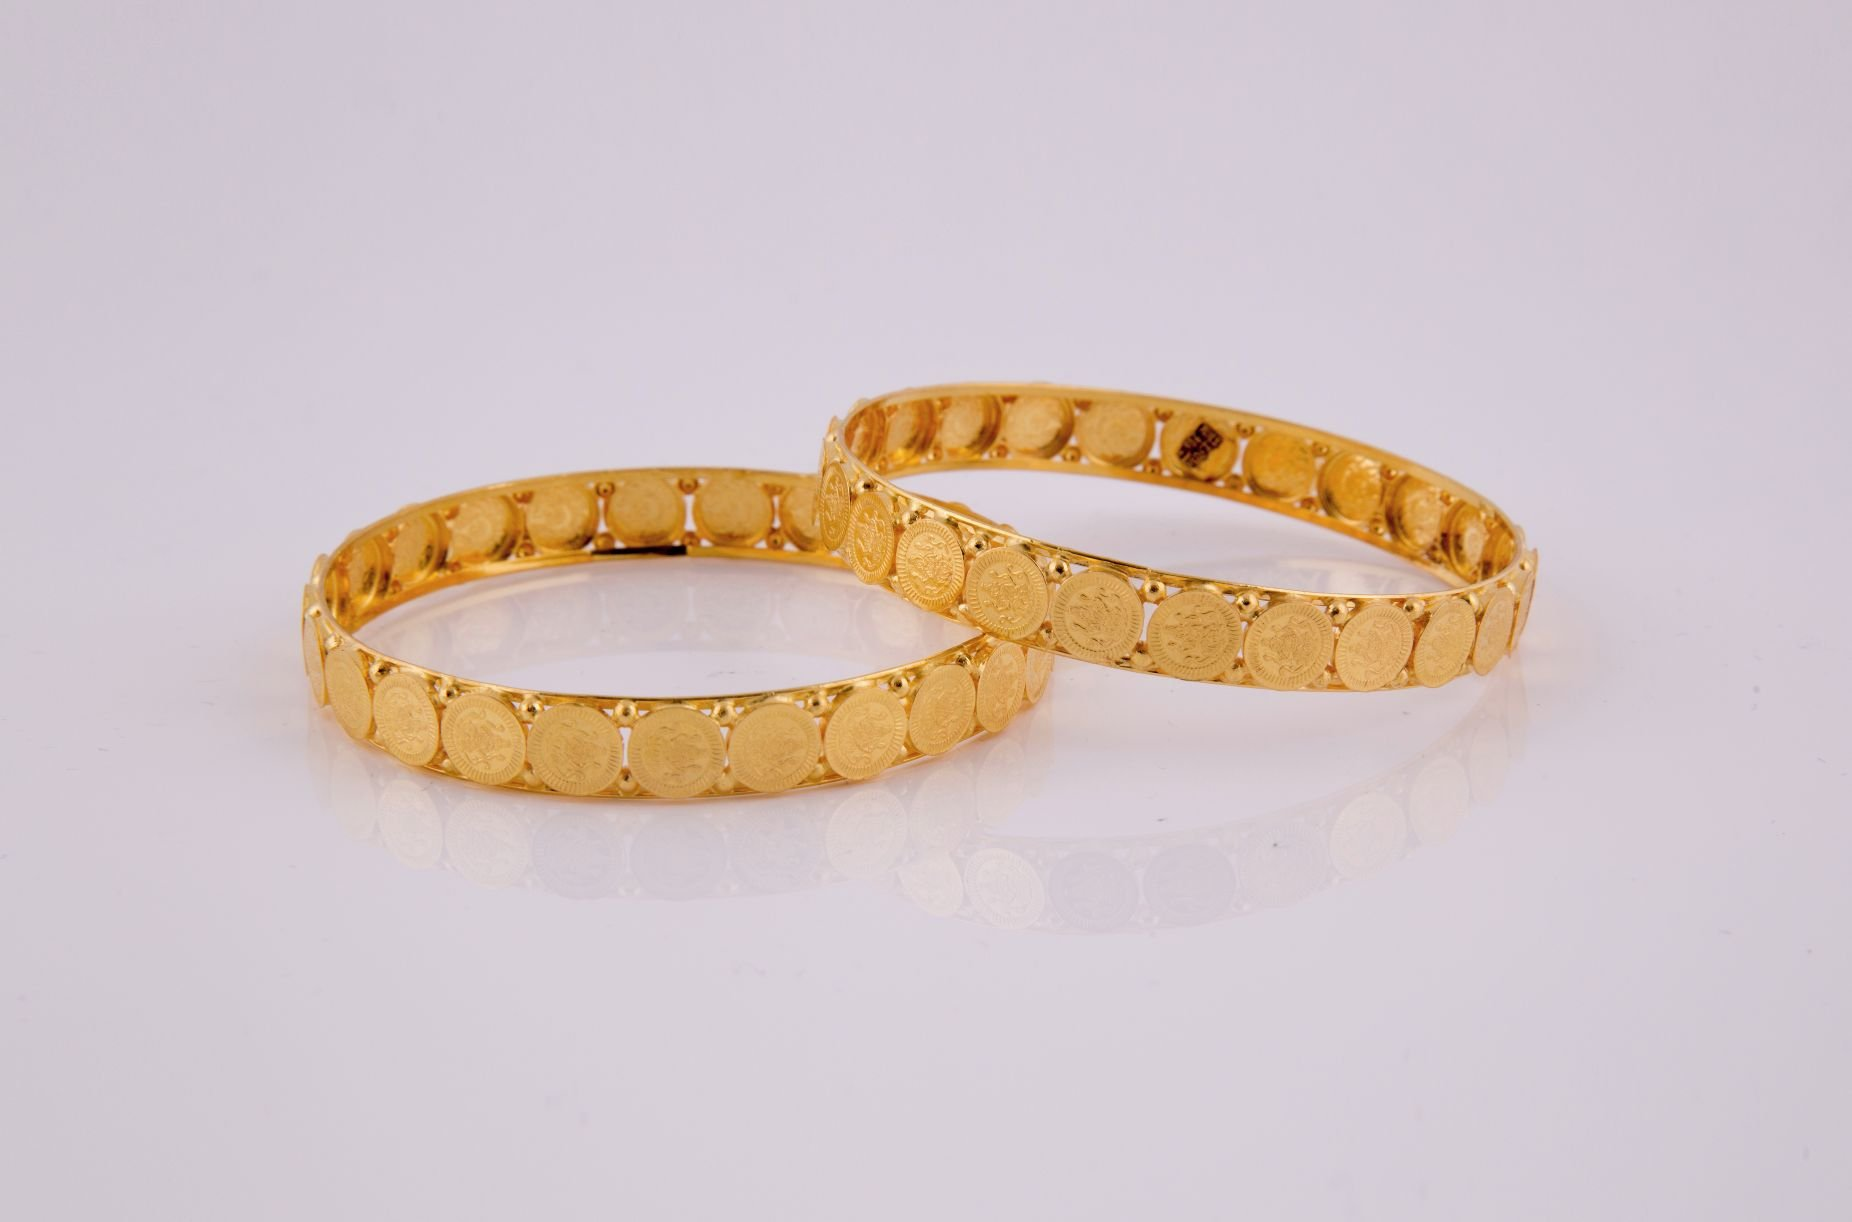 yellow plain company jewellers jewellery com bangles bracelet shopping a online ruchi candere kalyan bangle gold india